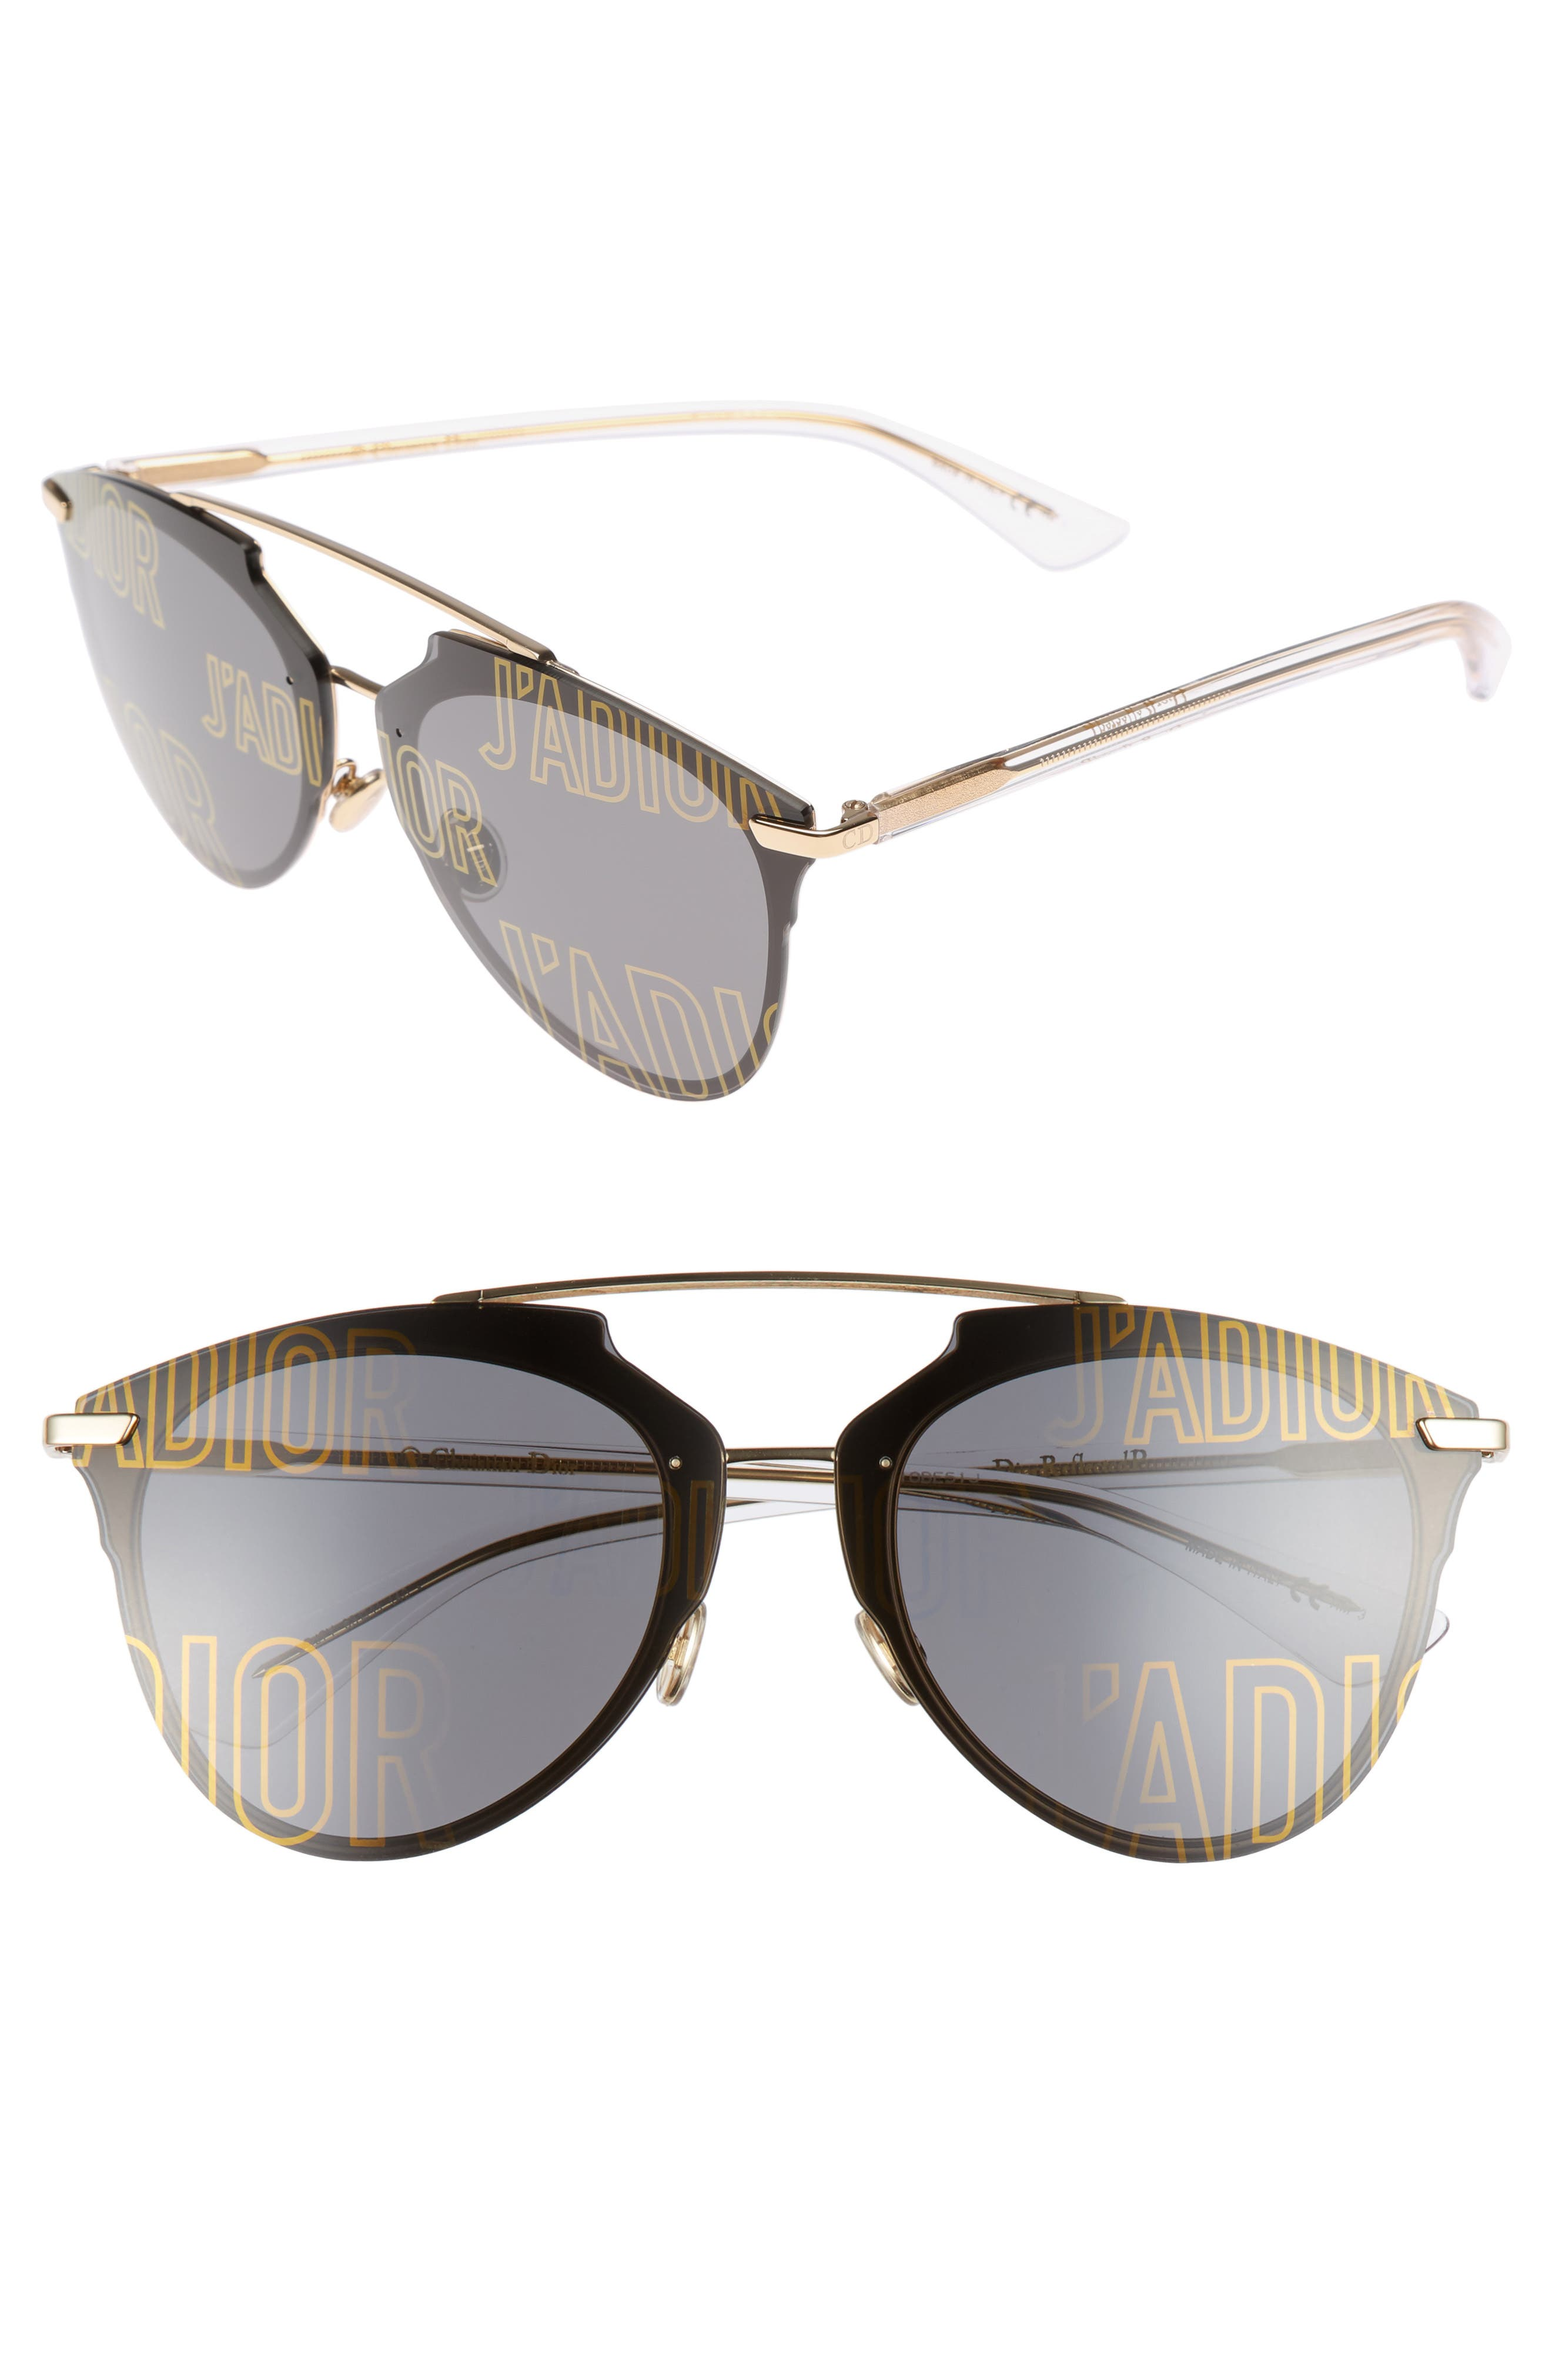 Alternate Image 1 Selected - Dior Reflected Prism 63mm Oversize Mirrored Brow Bar Sunglasses